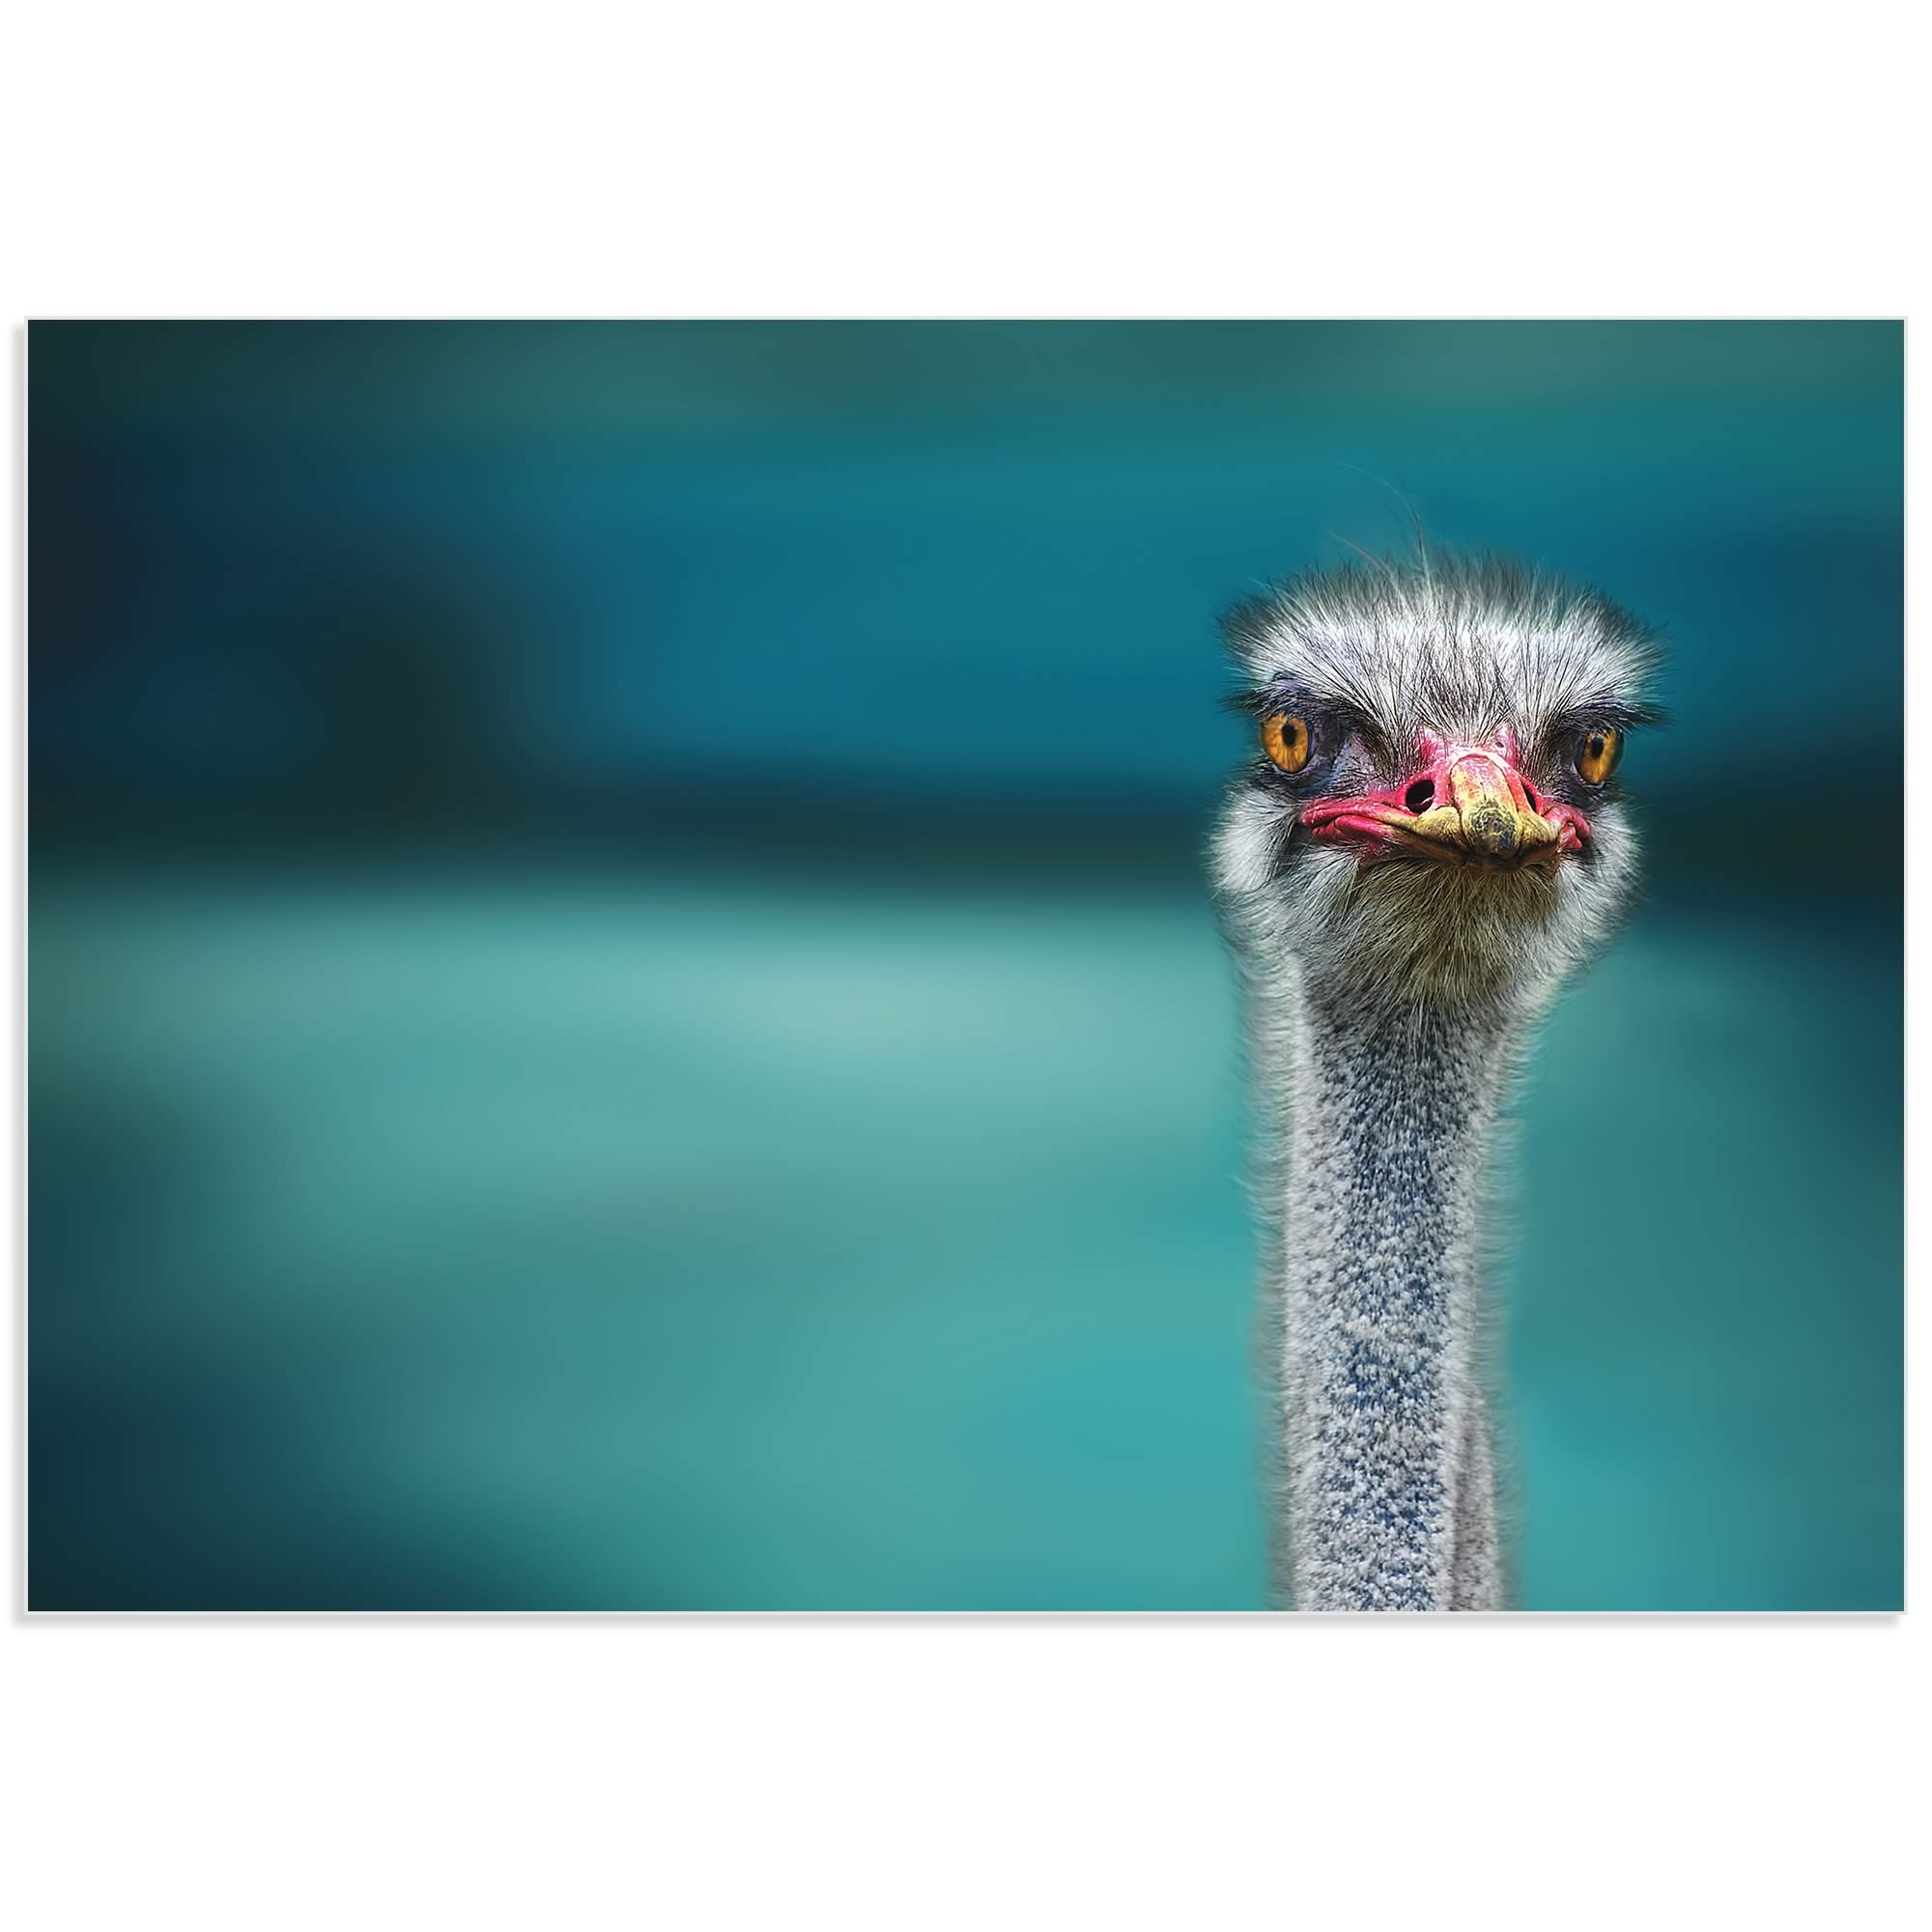 Ostrich by Piet Flour - Ostrich Wall Art on Metal or Acrylic - Alternate View 2